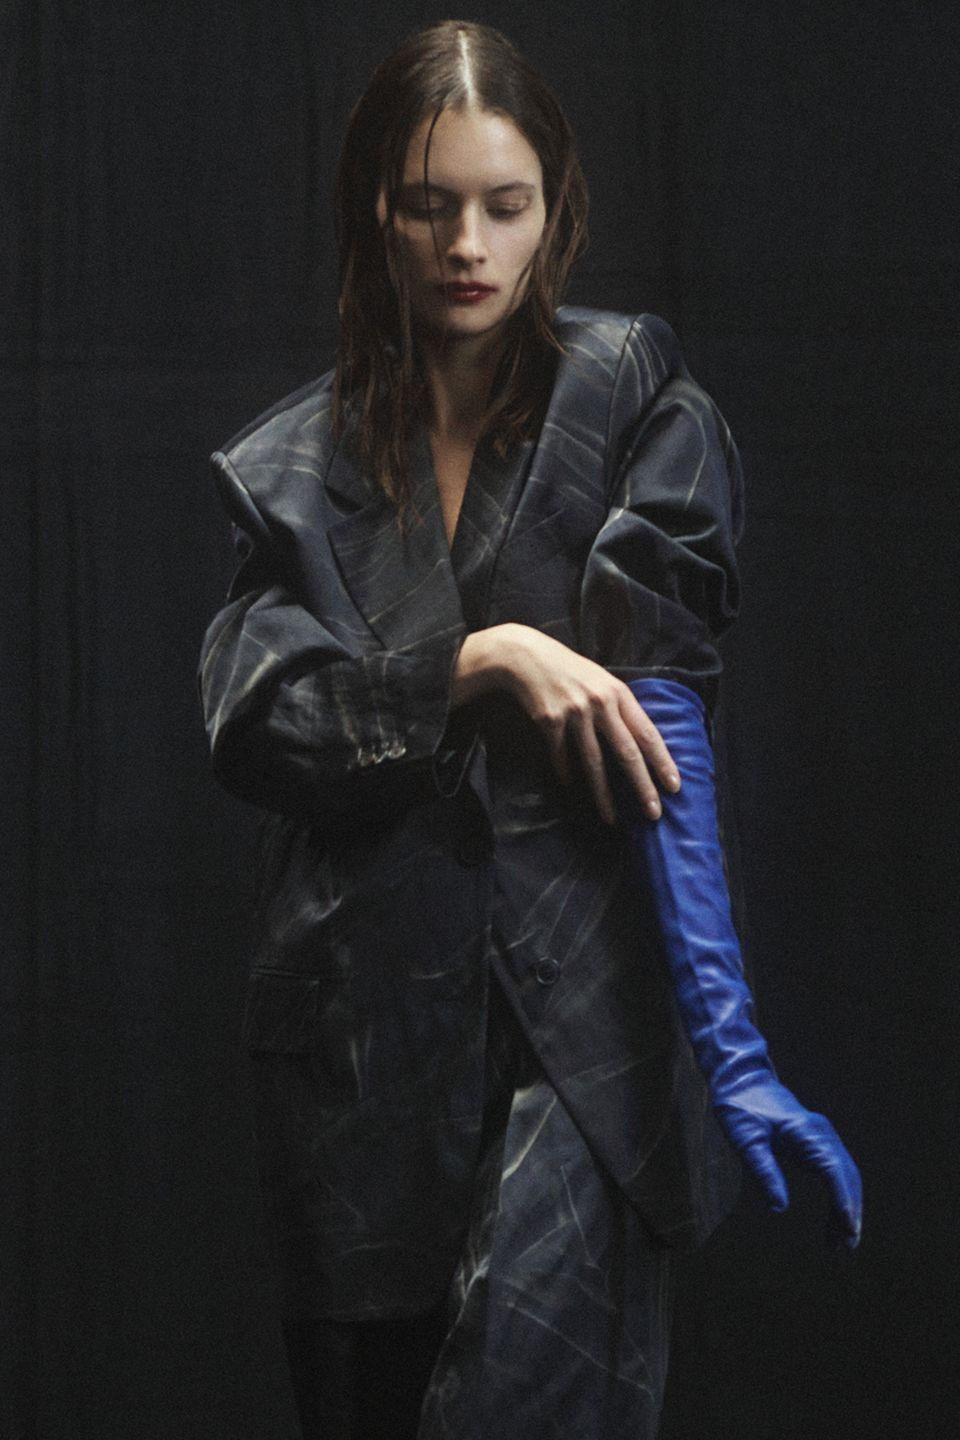 <p>Add a pop of color in an artistic stroke with a rolled up sleeve and an opera length colored glove...pairing optional.</p><p><em>Pictured: Dries van Noten</em></p>